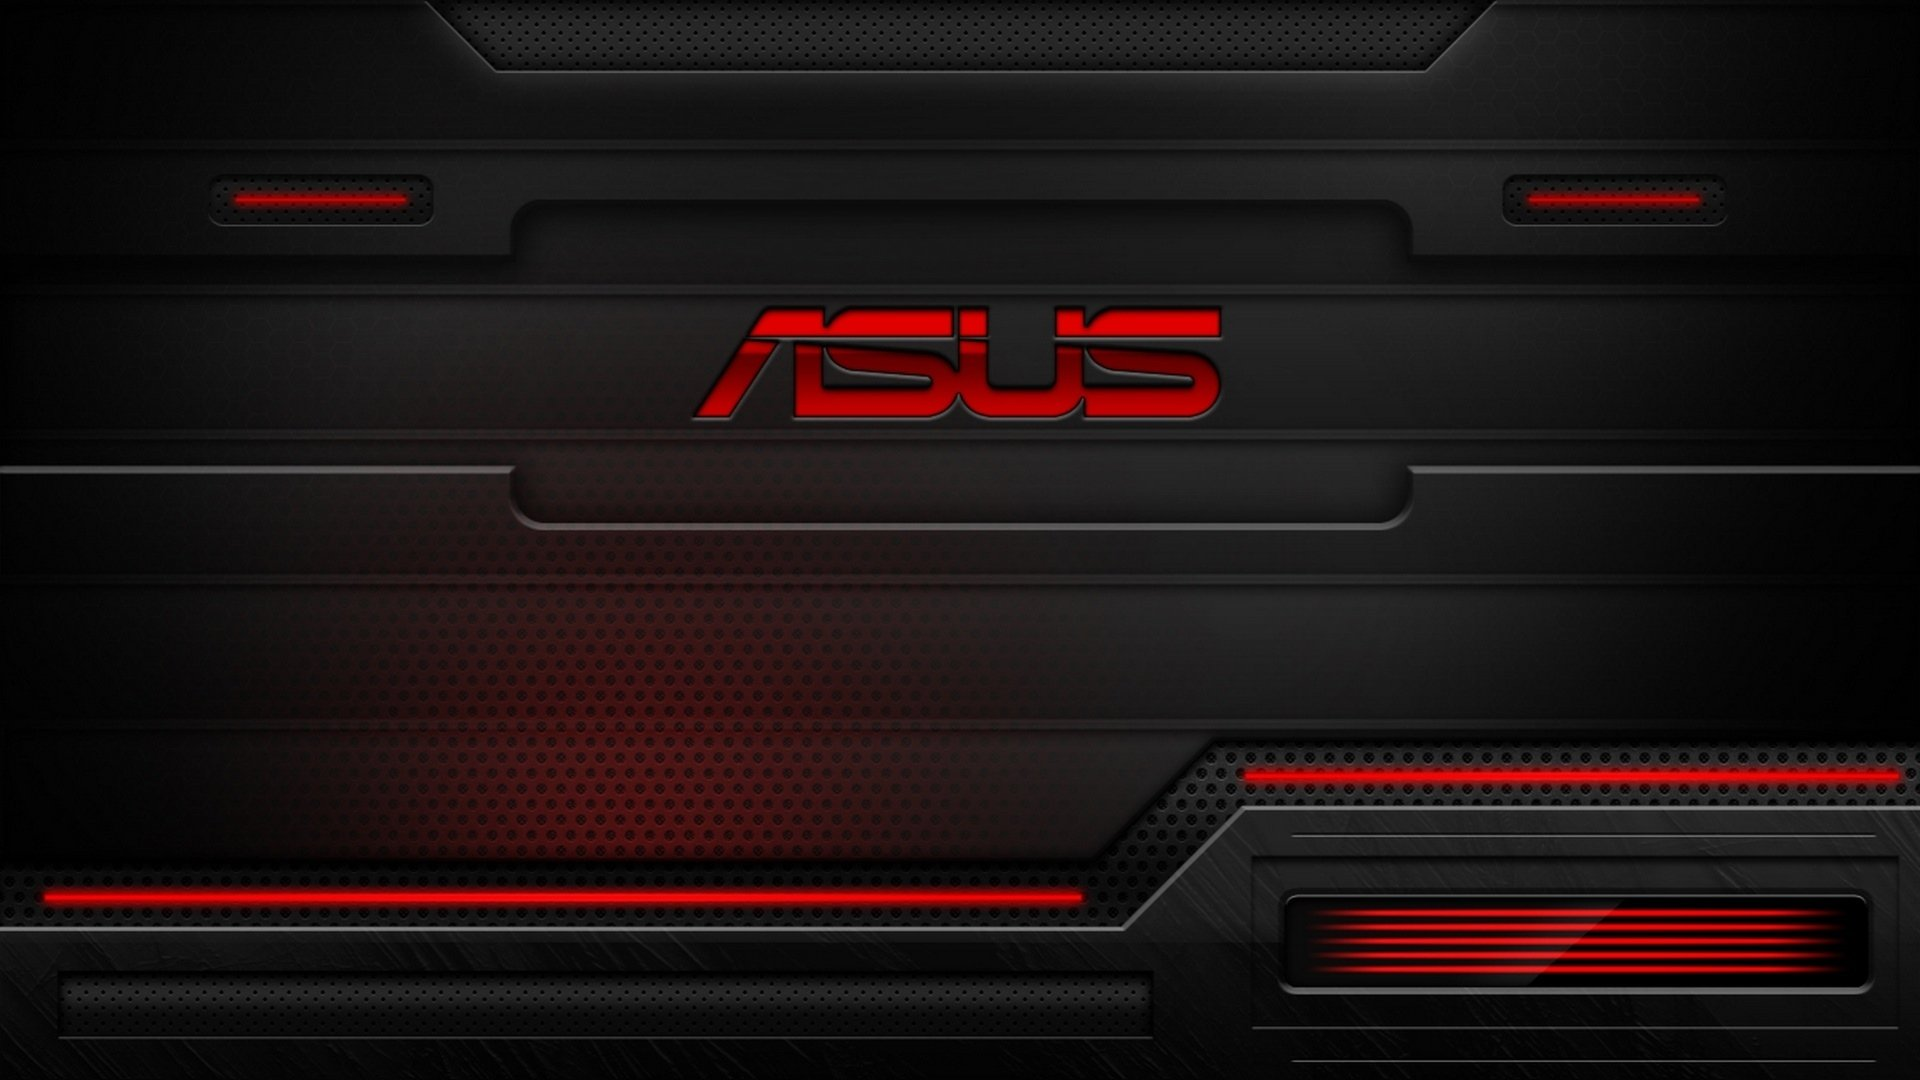 ASUS computer rog gamer republic gaming wallpaper 1920x1080 660547 1920x1080